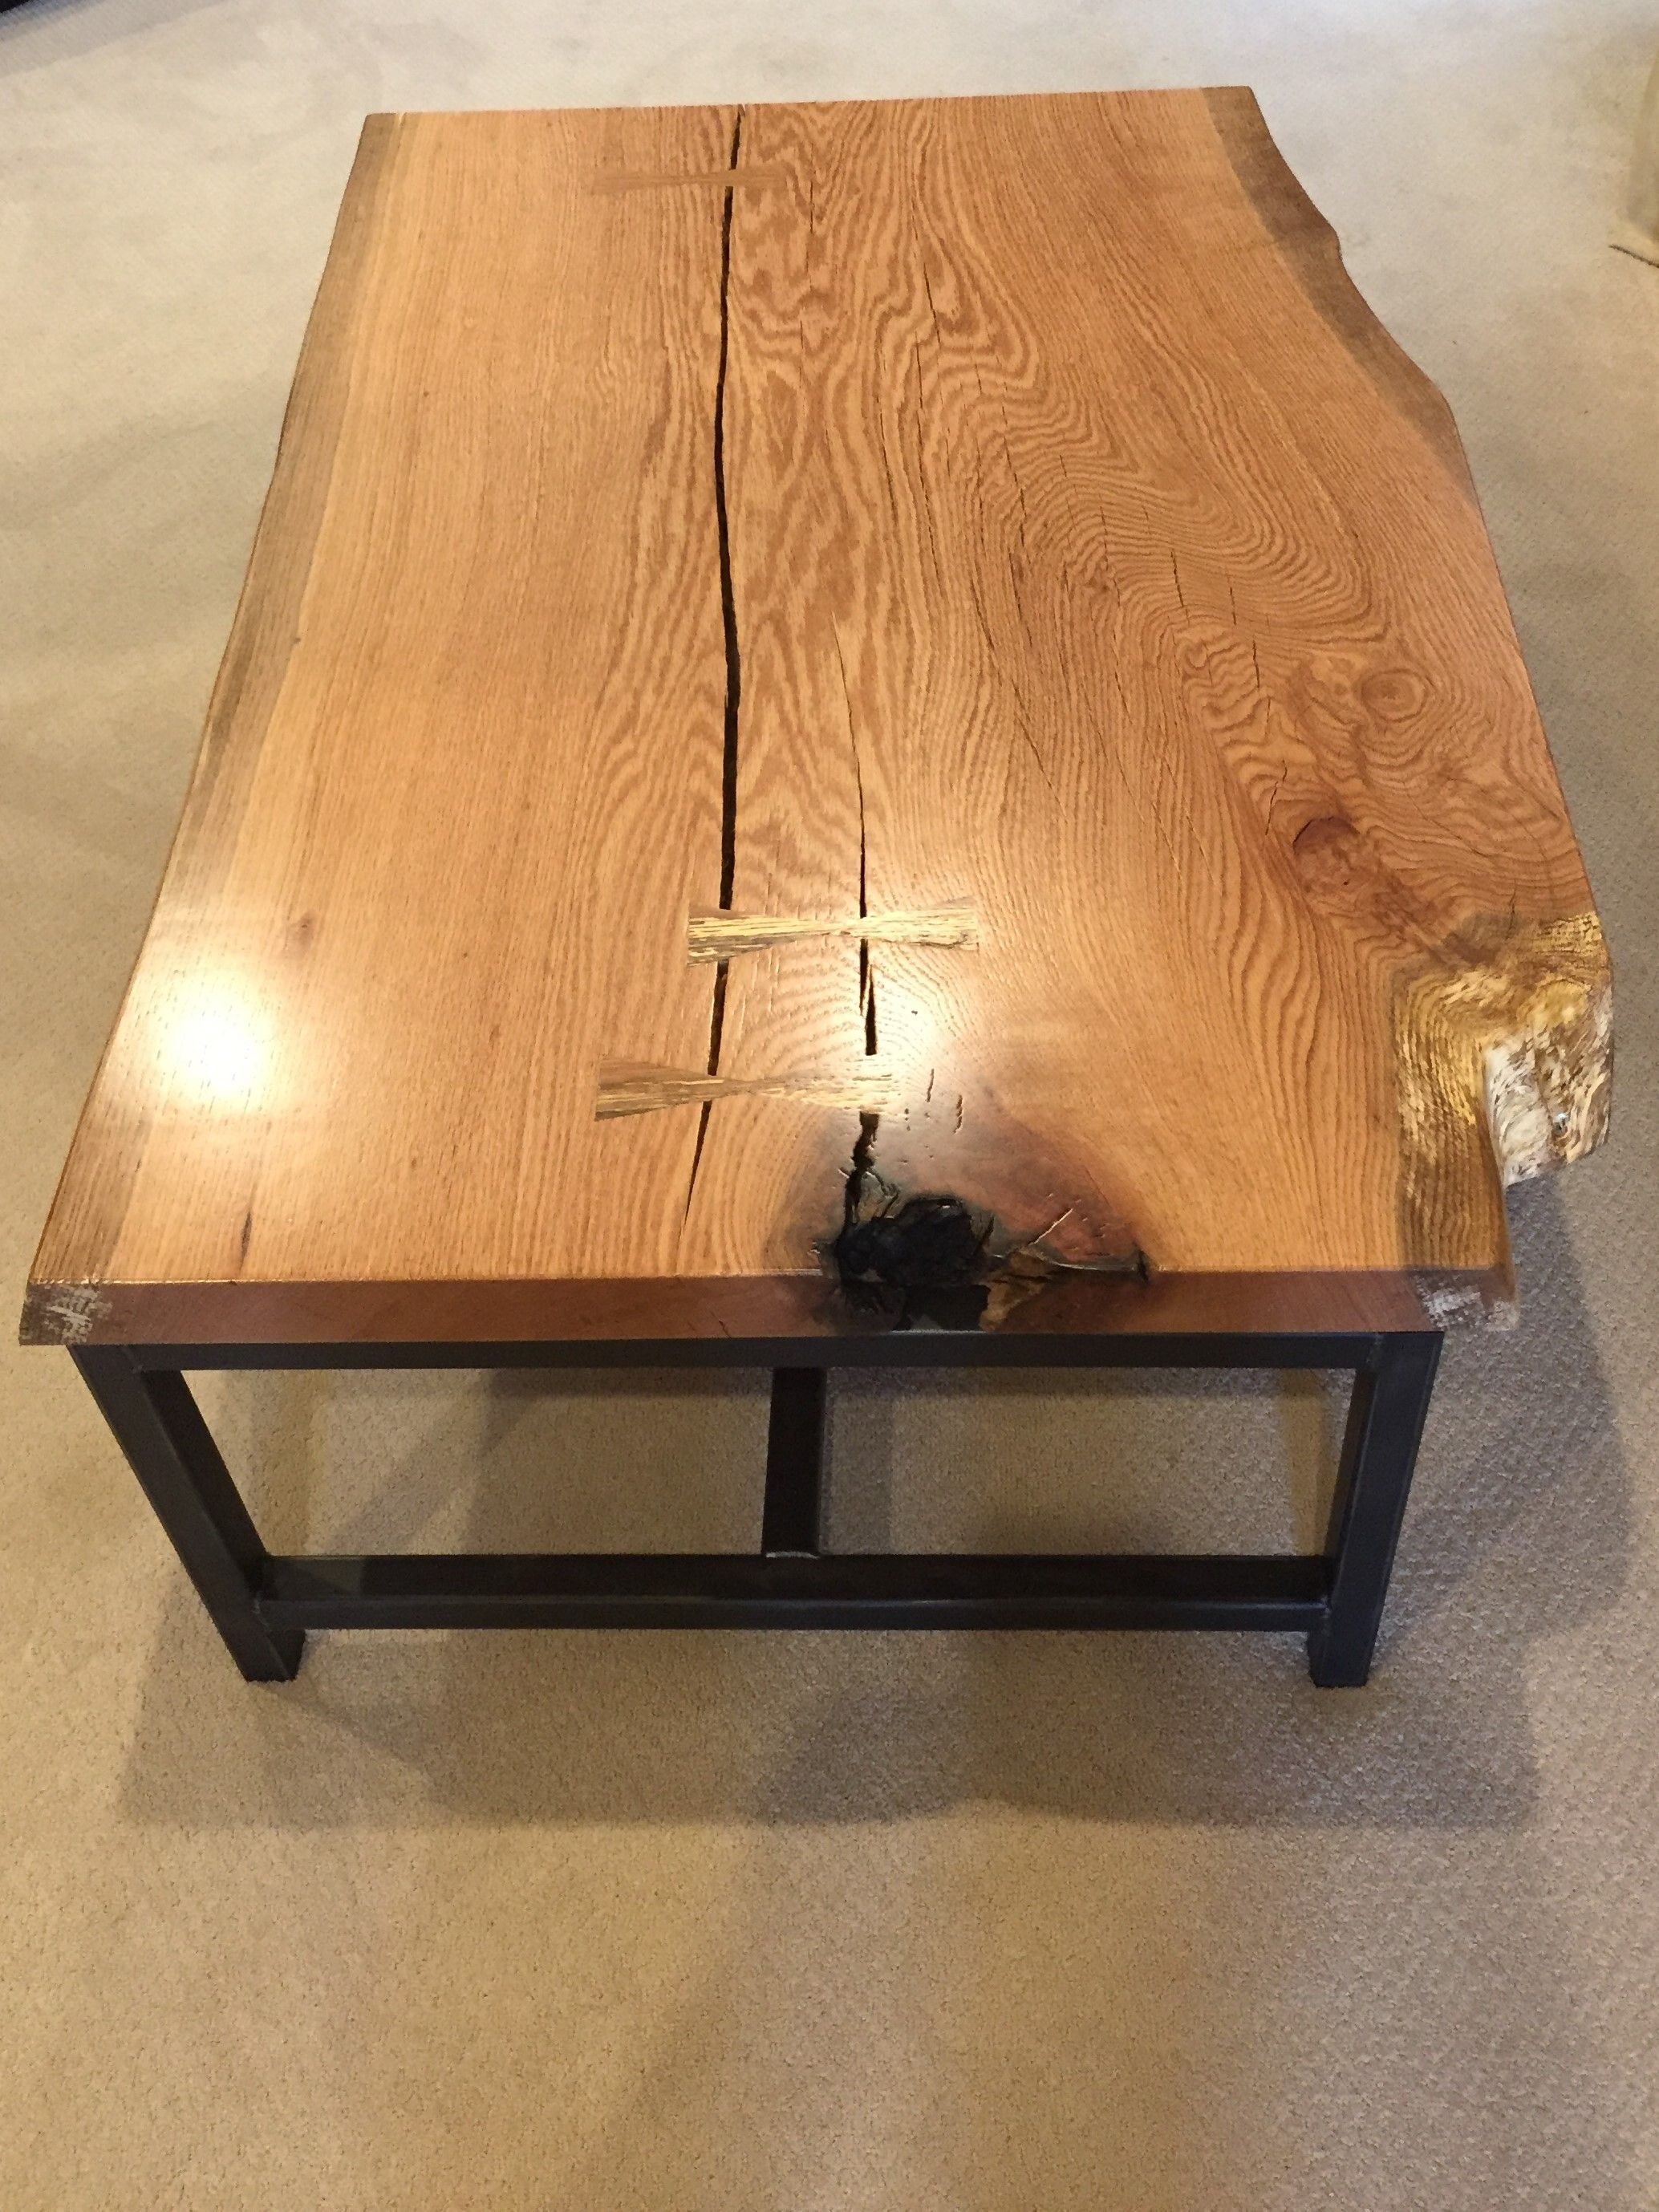 Eutree Forest Free Artisan Live Edge White Oak Wood Slab Tabletop